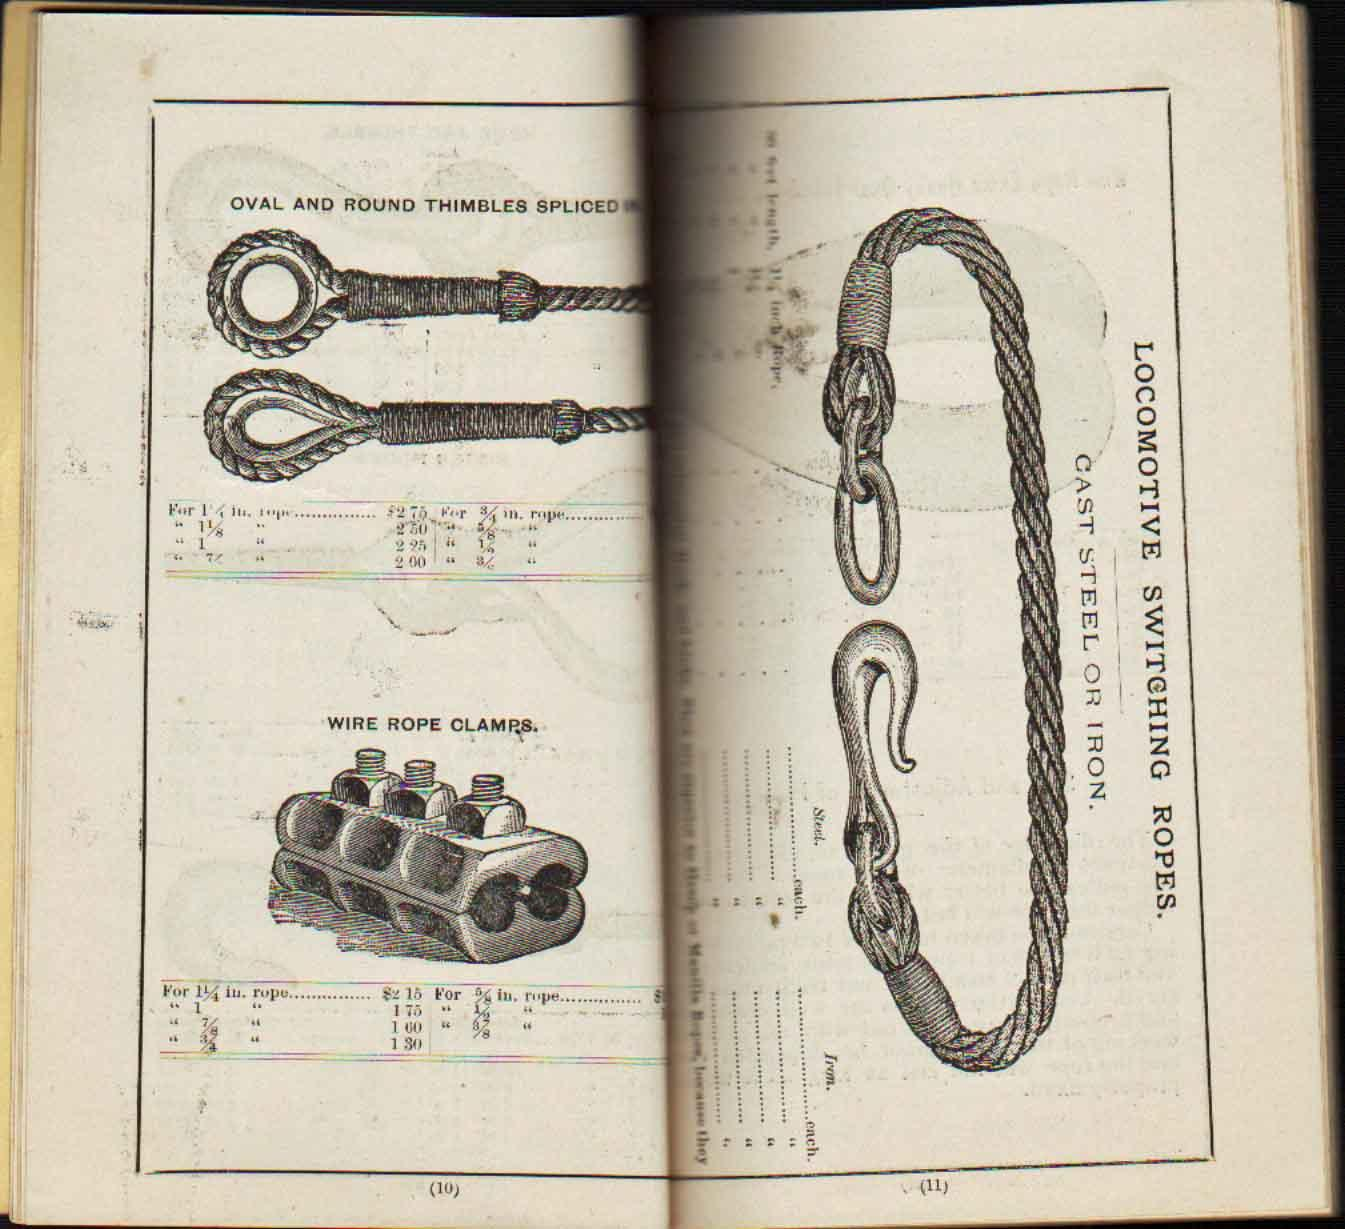 WILLIAMSPORT WIRE ROPE COMPANY, WILLIAMSPORT, PA. Price List by ...